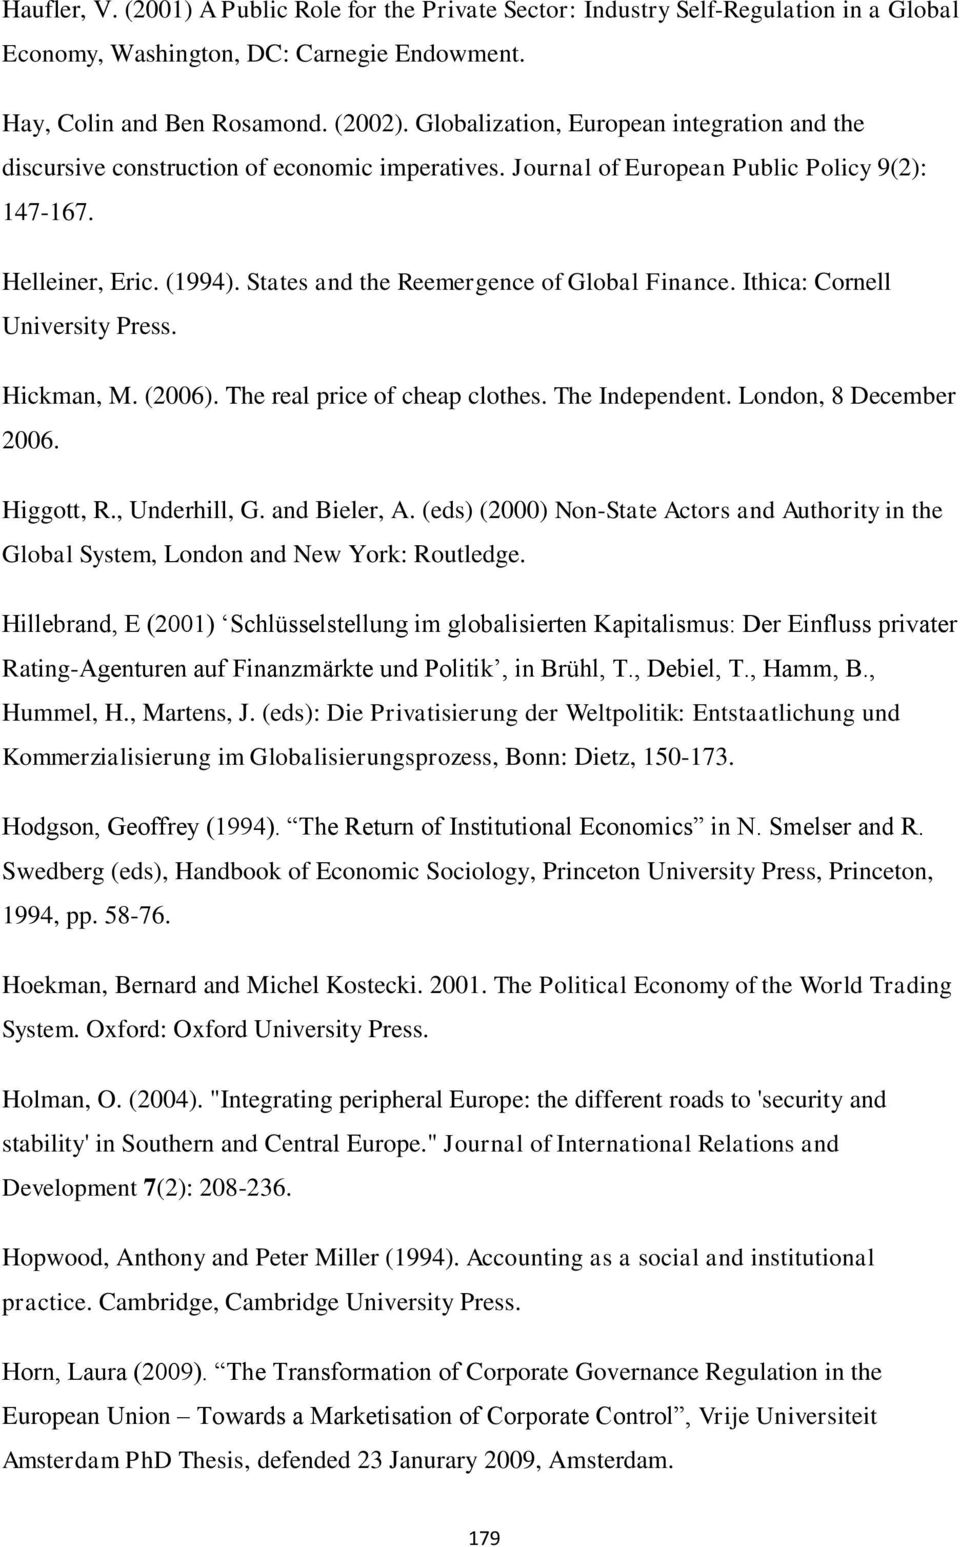 States and the Reemergence of Global Finance. Ithica: Cornell University Press. Hickman, M. (2006). The real price of cheap clothes. The Independent. London, 8 December 2006. Higgott, R.